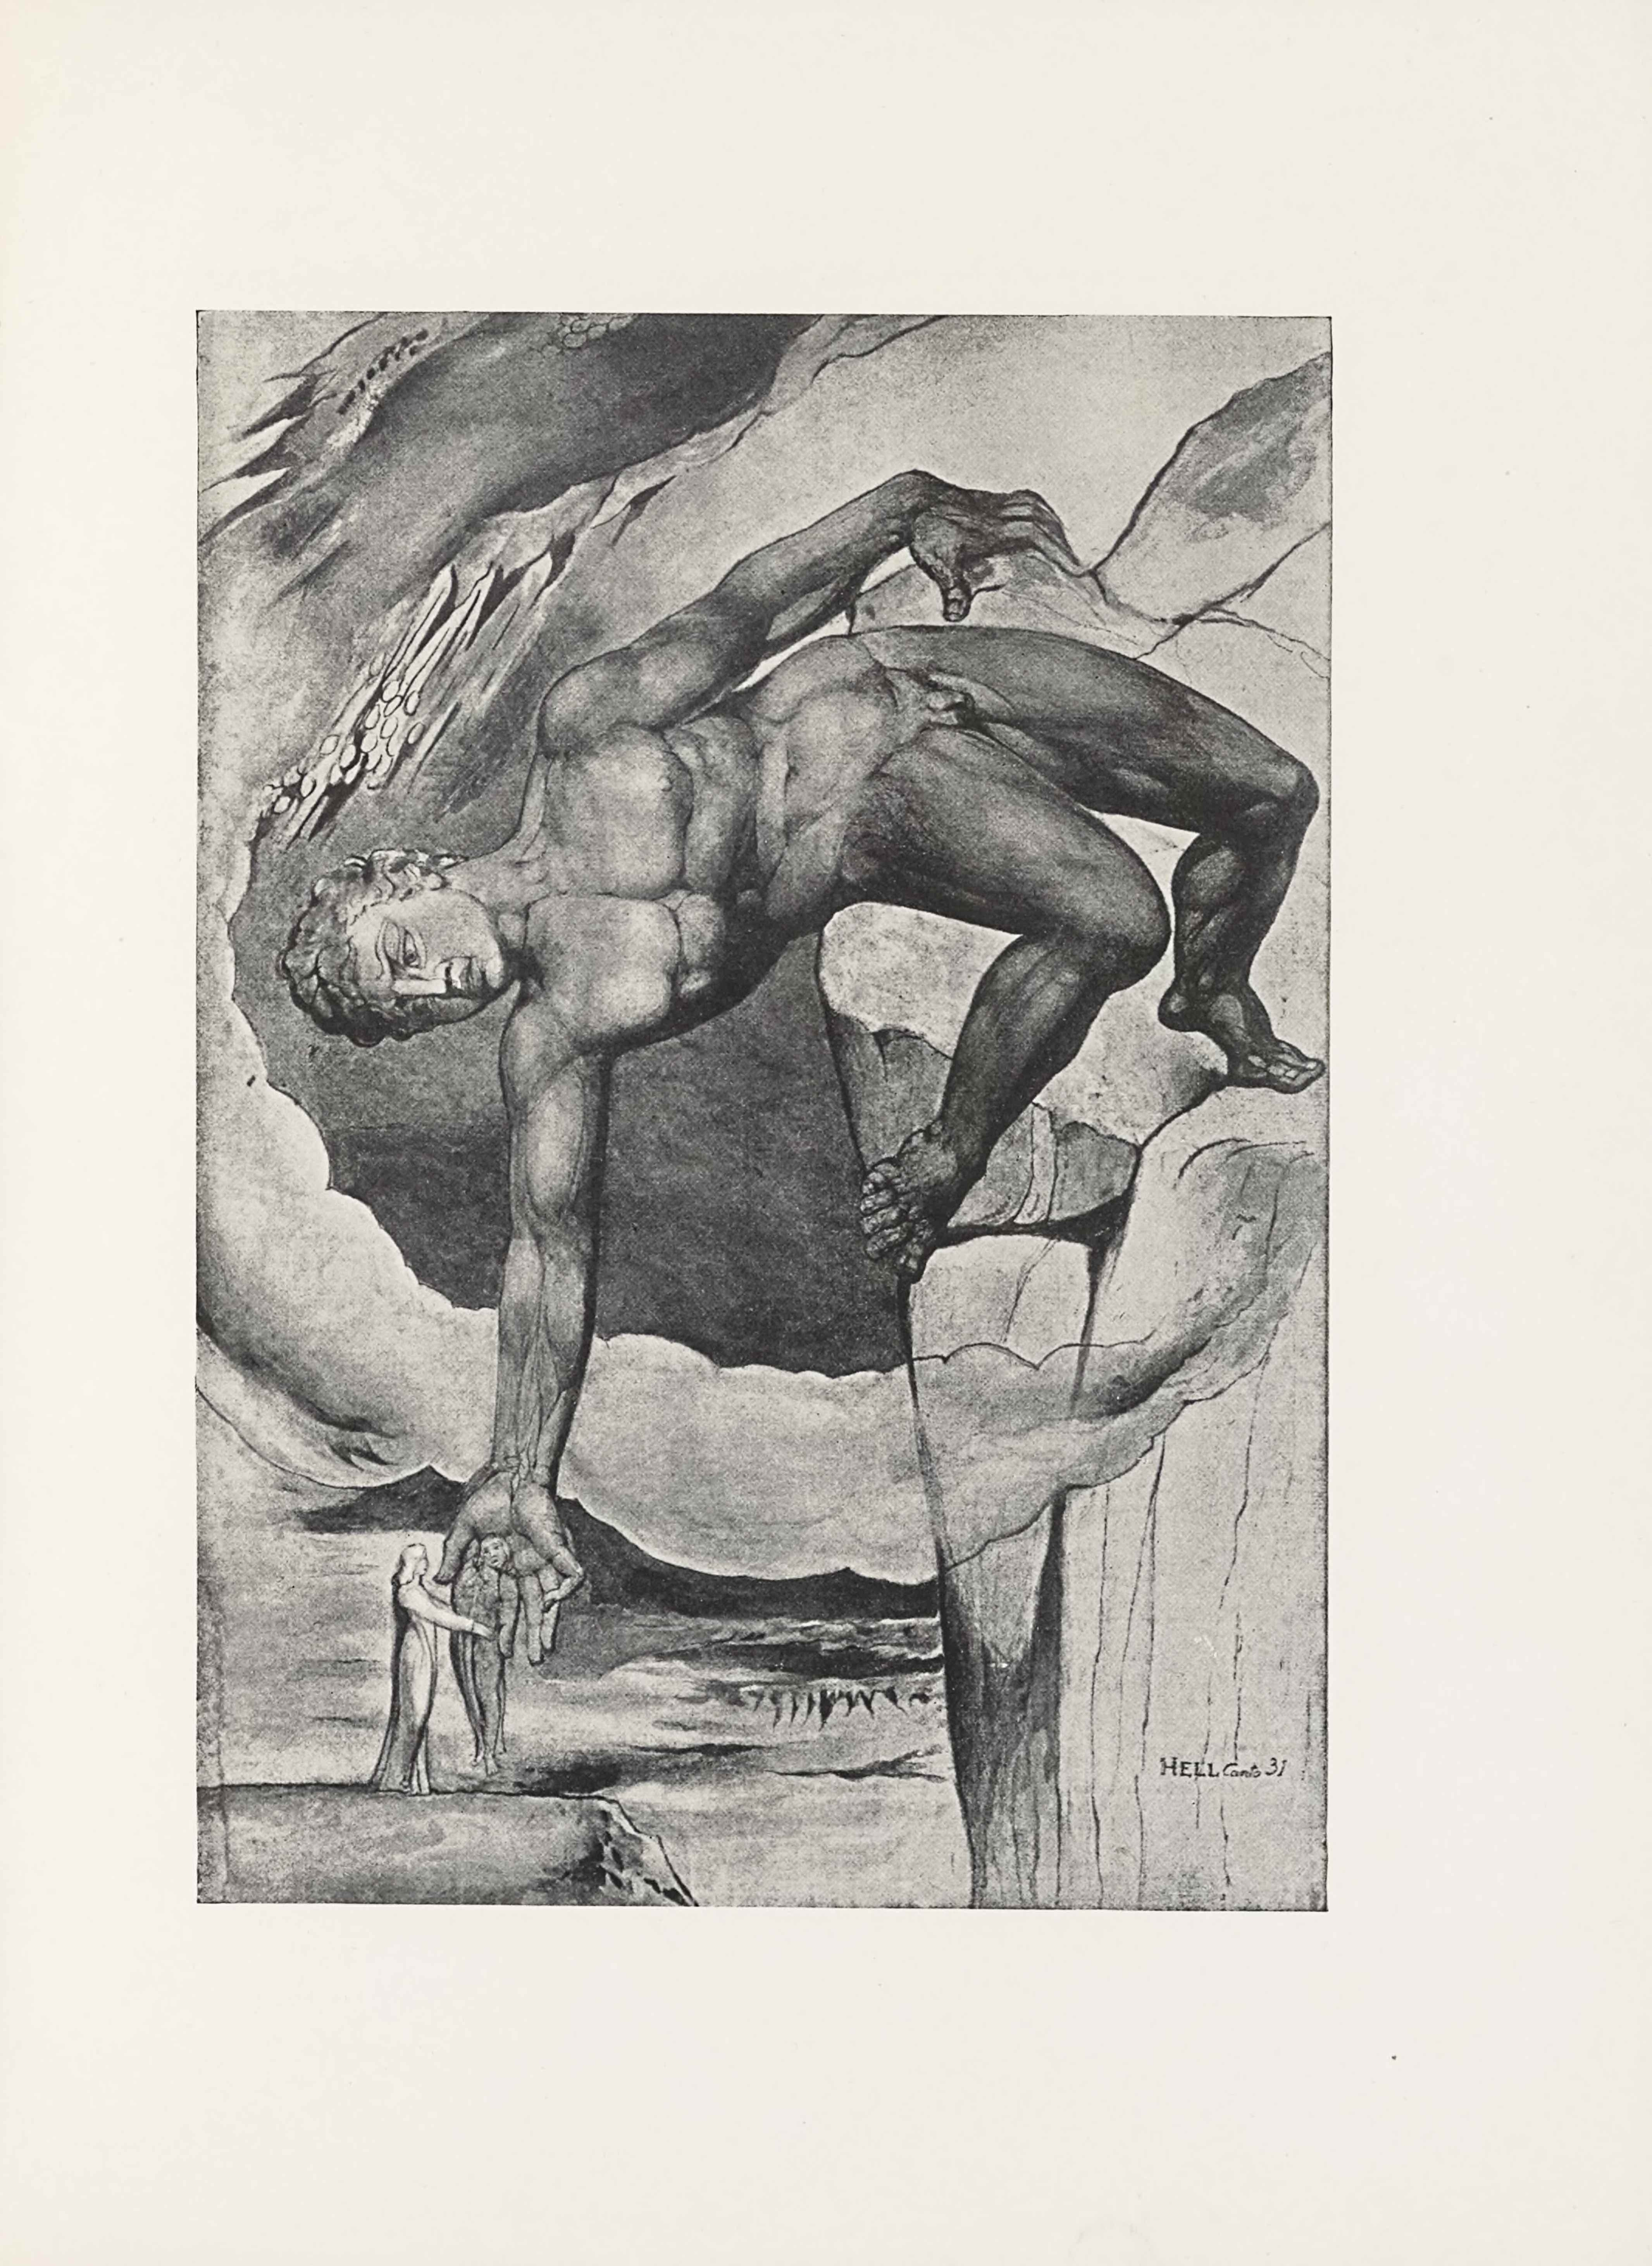 "The half-tone reproduction of a water-colour by William Blake is in portrait                  orientation and is an illustration of a scene in Dante's Inferno. The image shows                  the classical Giant, Anteus in Hell, leaning backwards in an impossibly balanced                  posture on one toe, with one hand on a high rocky outcropping, reaching down to                  set a figure (Dante) down on a small ledge (the Verge of Cocytus) below, where                  another figure (Virgil) stands waiting. The naked giant fills the upper centre of                  the picture plane. In the foreground and the bottom left corner, the small rocky                  ledge appears just visible within the frame, extending out to almost the halfway                  point of the image width. Atop the small ledge stands a man facing to the right of                  the page and visible in profile, wearing a long robe, with his arms extended out                  in front, reaching toward the man being set down by the Giant (Dante). He appears                  resting in the gigantic hand of Antaeus. In the bottom right corner the tall rocky                  outcropping begins, extending to a third of the image width and nearly the                  entirety of its height. The outcropping has vertical lines drawn to show pieces of                  rock that are shifted out of line with the structure. Halfway up the height of the                  outcropping a stream of mist or cloud extends to the left of the page before                  looping up and back to the right side, leaving a semi-circle of cloud around the                  exterior of Giant. In the distance between the two rocky ledges lies a barren                  surface of land, with cracks delineating the flatness. The gigantic man takes up                  the rest of the space on the upper page. He has his left foot rested on the high                  rocky outcropping, with his right foot hanging off of the edge closest to the                  viewer. The rest of his body is leaned back horizontal to the ground. The man's                  upper body is twisted to extend his right arm down to hold the figure below. His                  chest faces the viewer and his left arm clings to a piece of rock on the top edge                  of the high outcropping. His head is turned to face down below him, and he has a                  crease between his eyebrows. He has slightly downturned lips, and his nose is                  scrunched up. He has short wavy hair. He is extremely muscular a. The sky behind                  the scene is dark, almost black and the semi-circle cloud cuts through with its                  light colouring. In the bottom right corner is the text: ""HELL [caps] Canto                  31"""